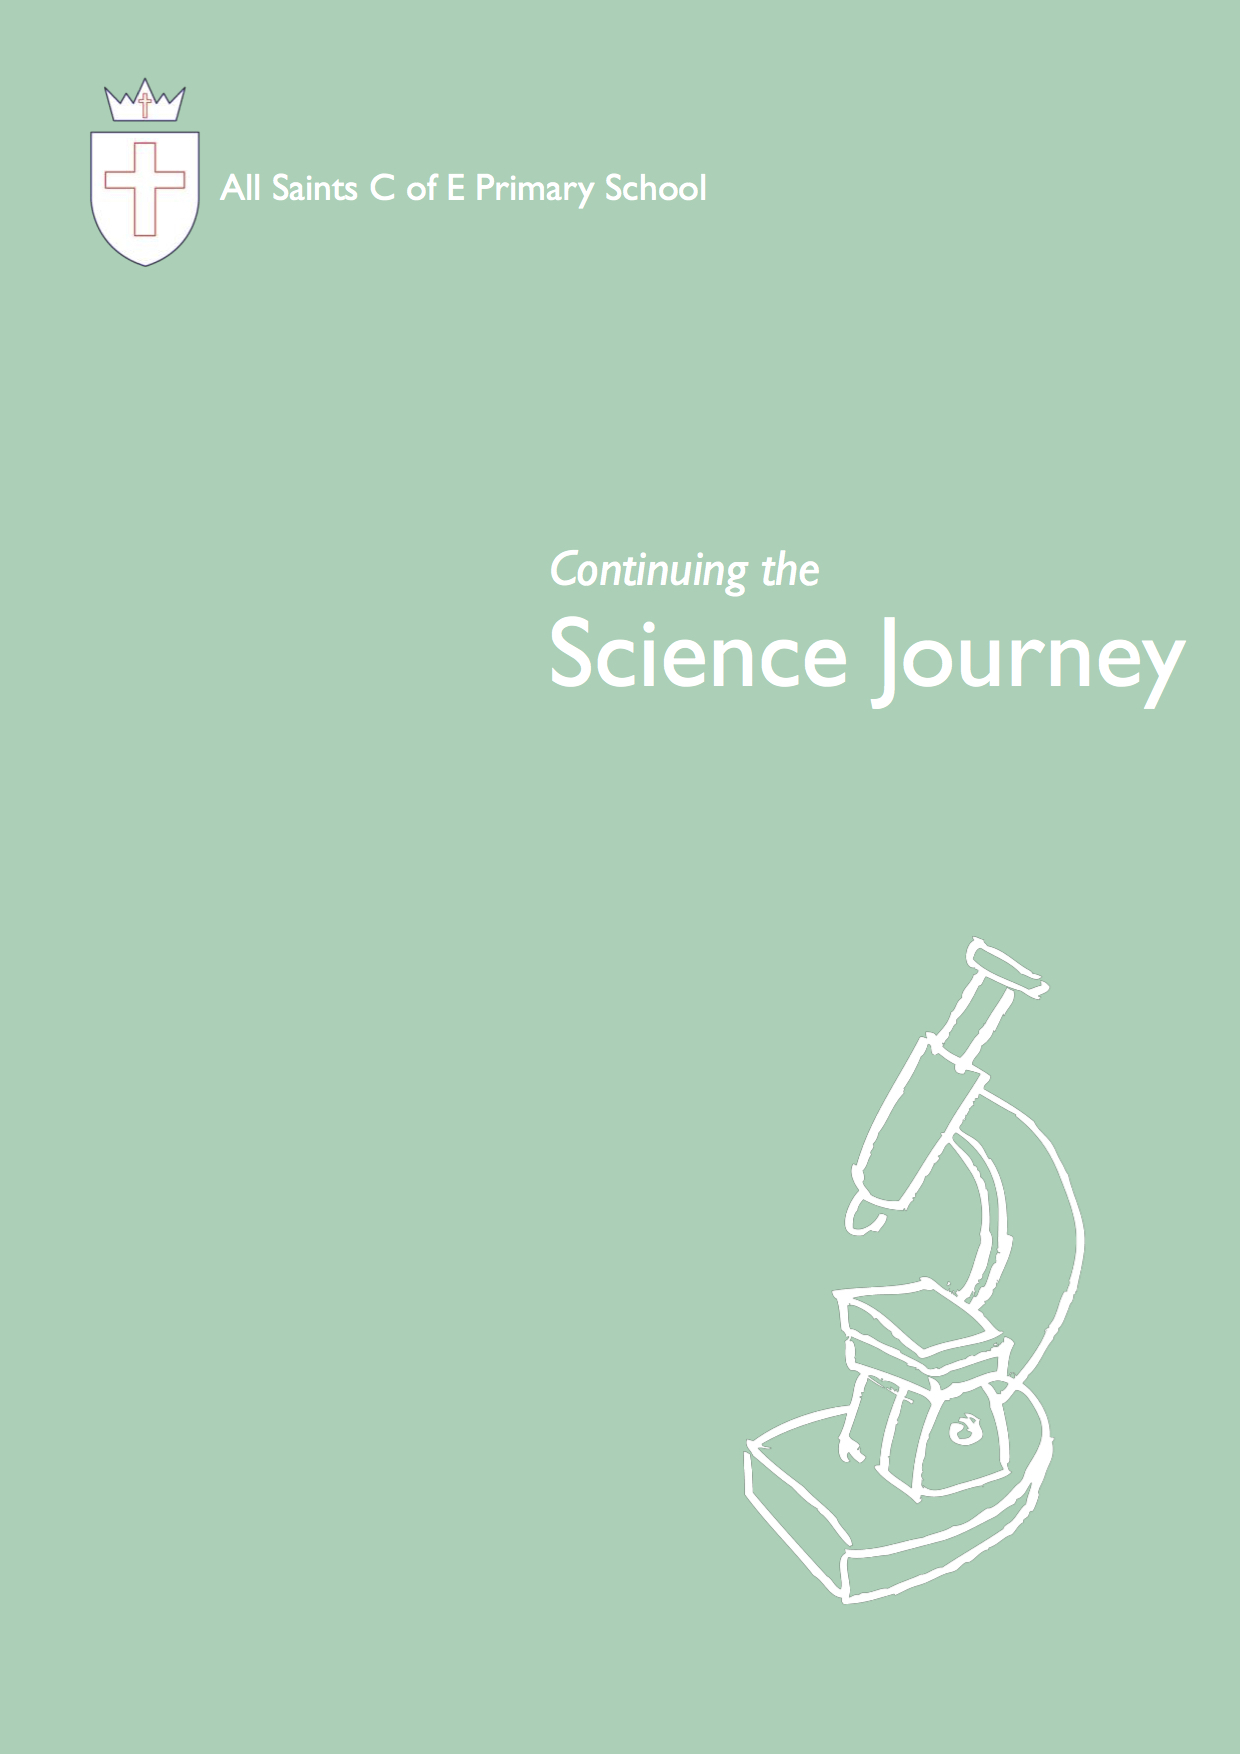 New_Science_Booklet_-_Sep_2017.jpg